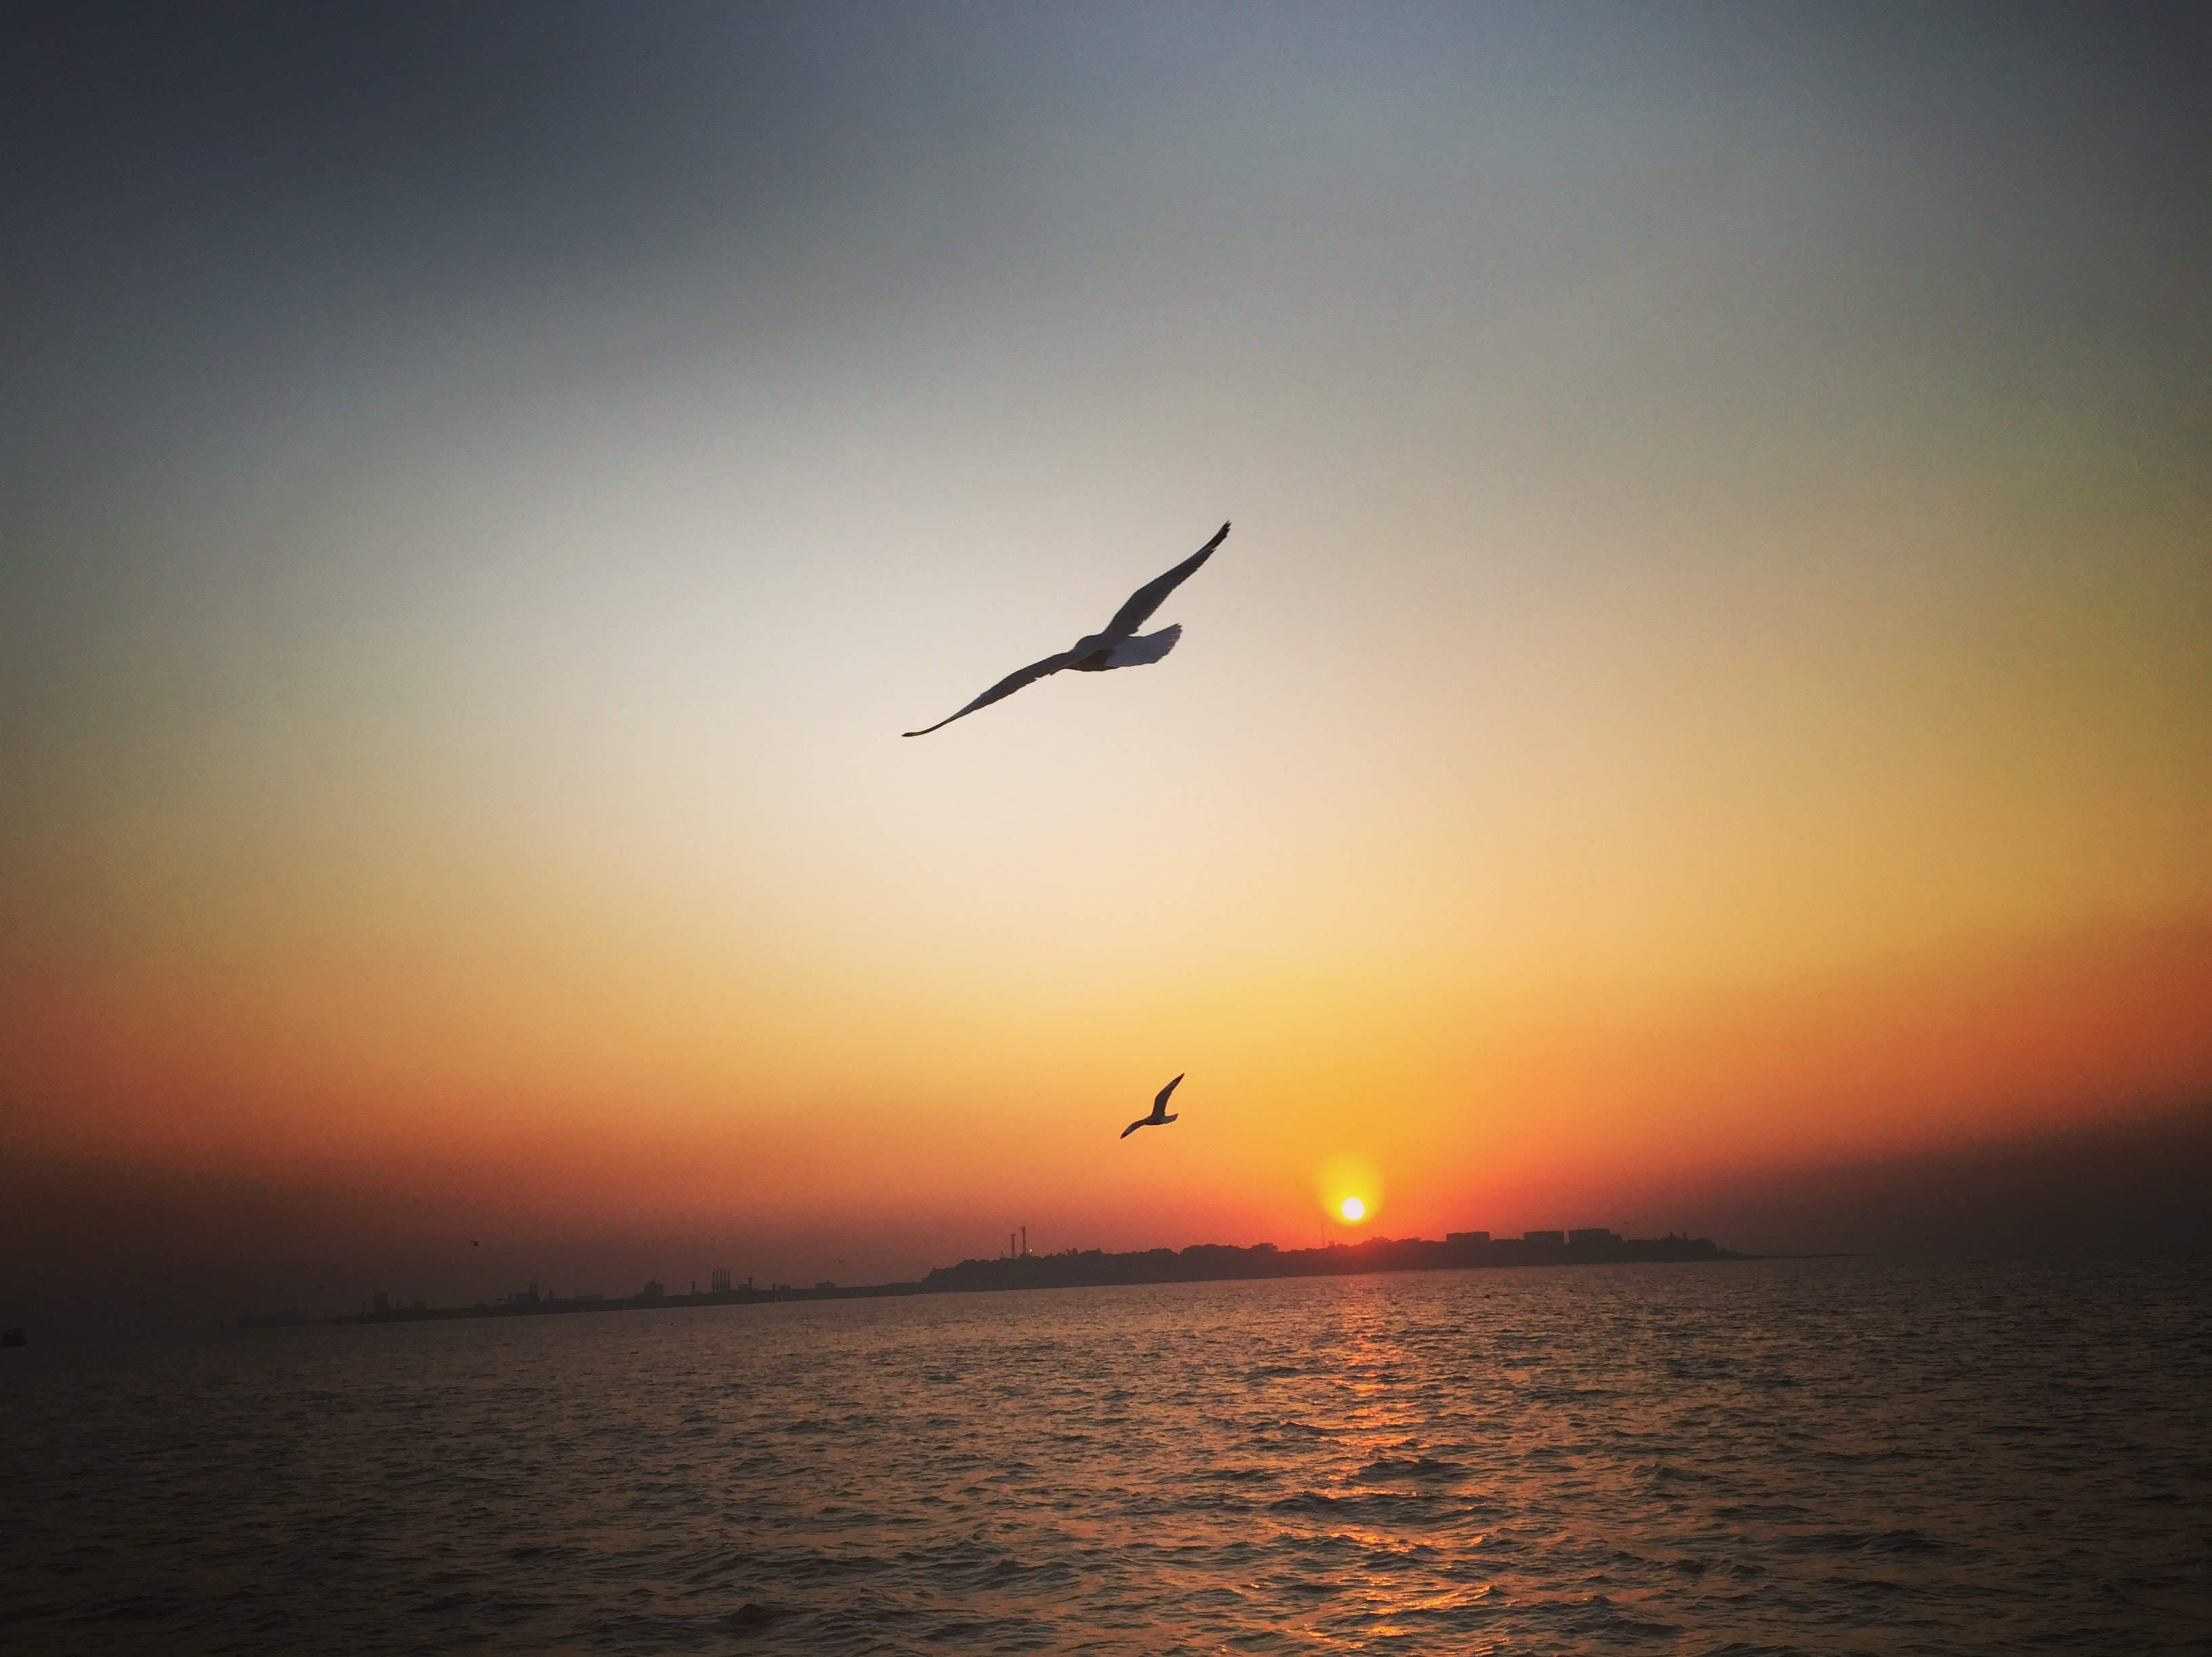 two birds flying above the ocean